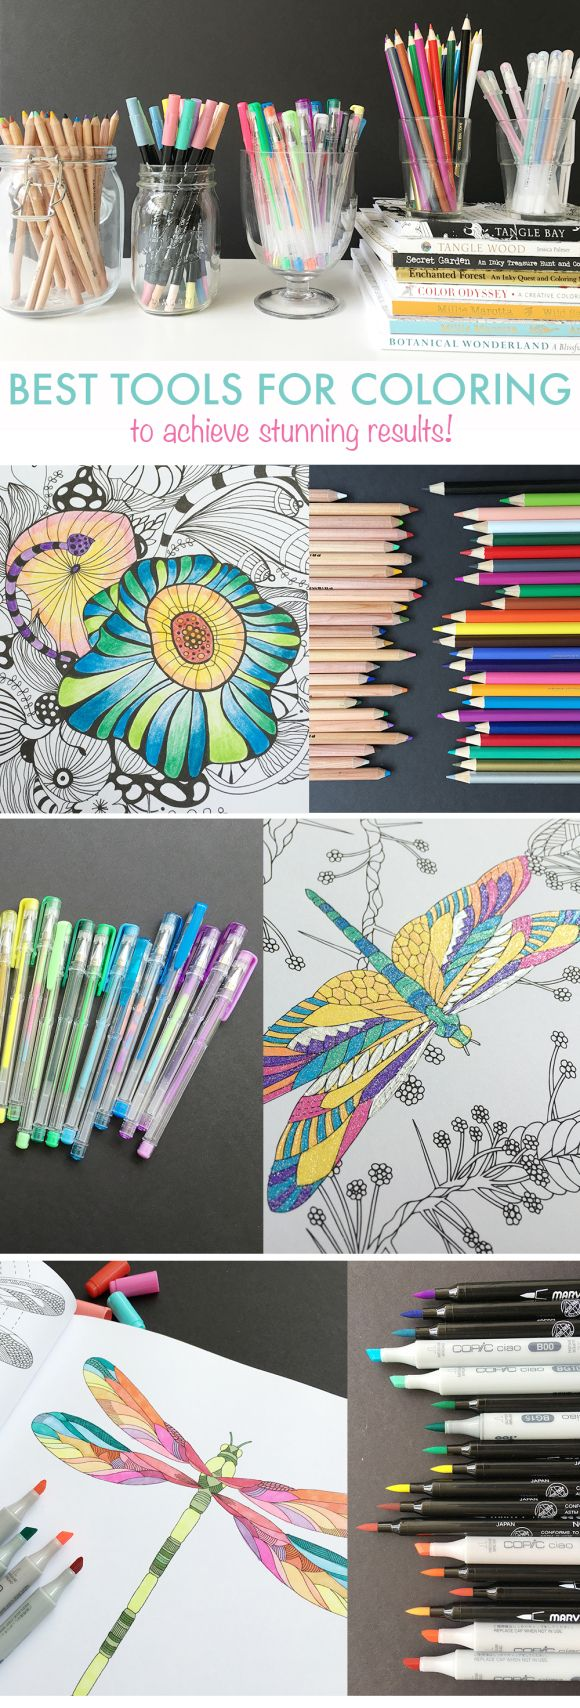 Coloring book pages pinterest - Learn The Best Tools Tips And Tricks For Coloring Looking For A Fun Coloring